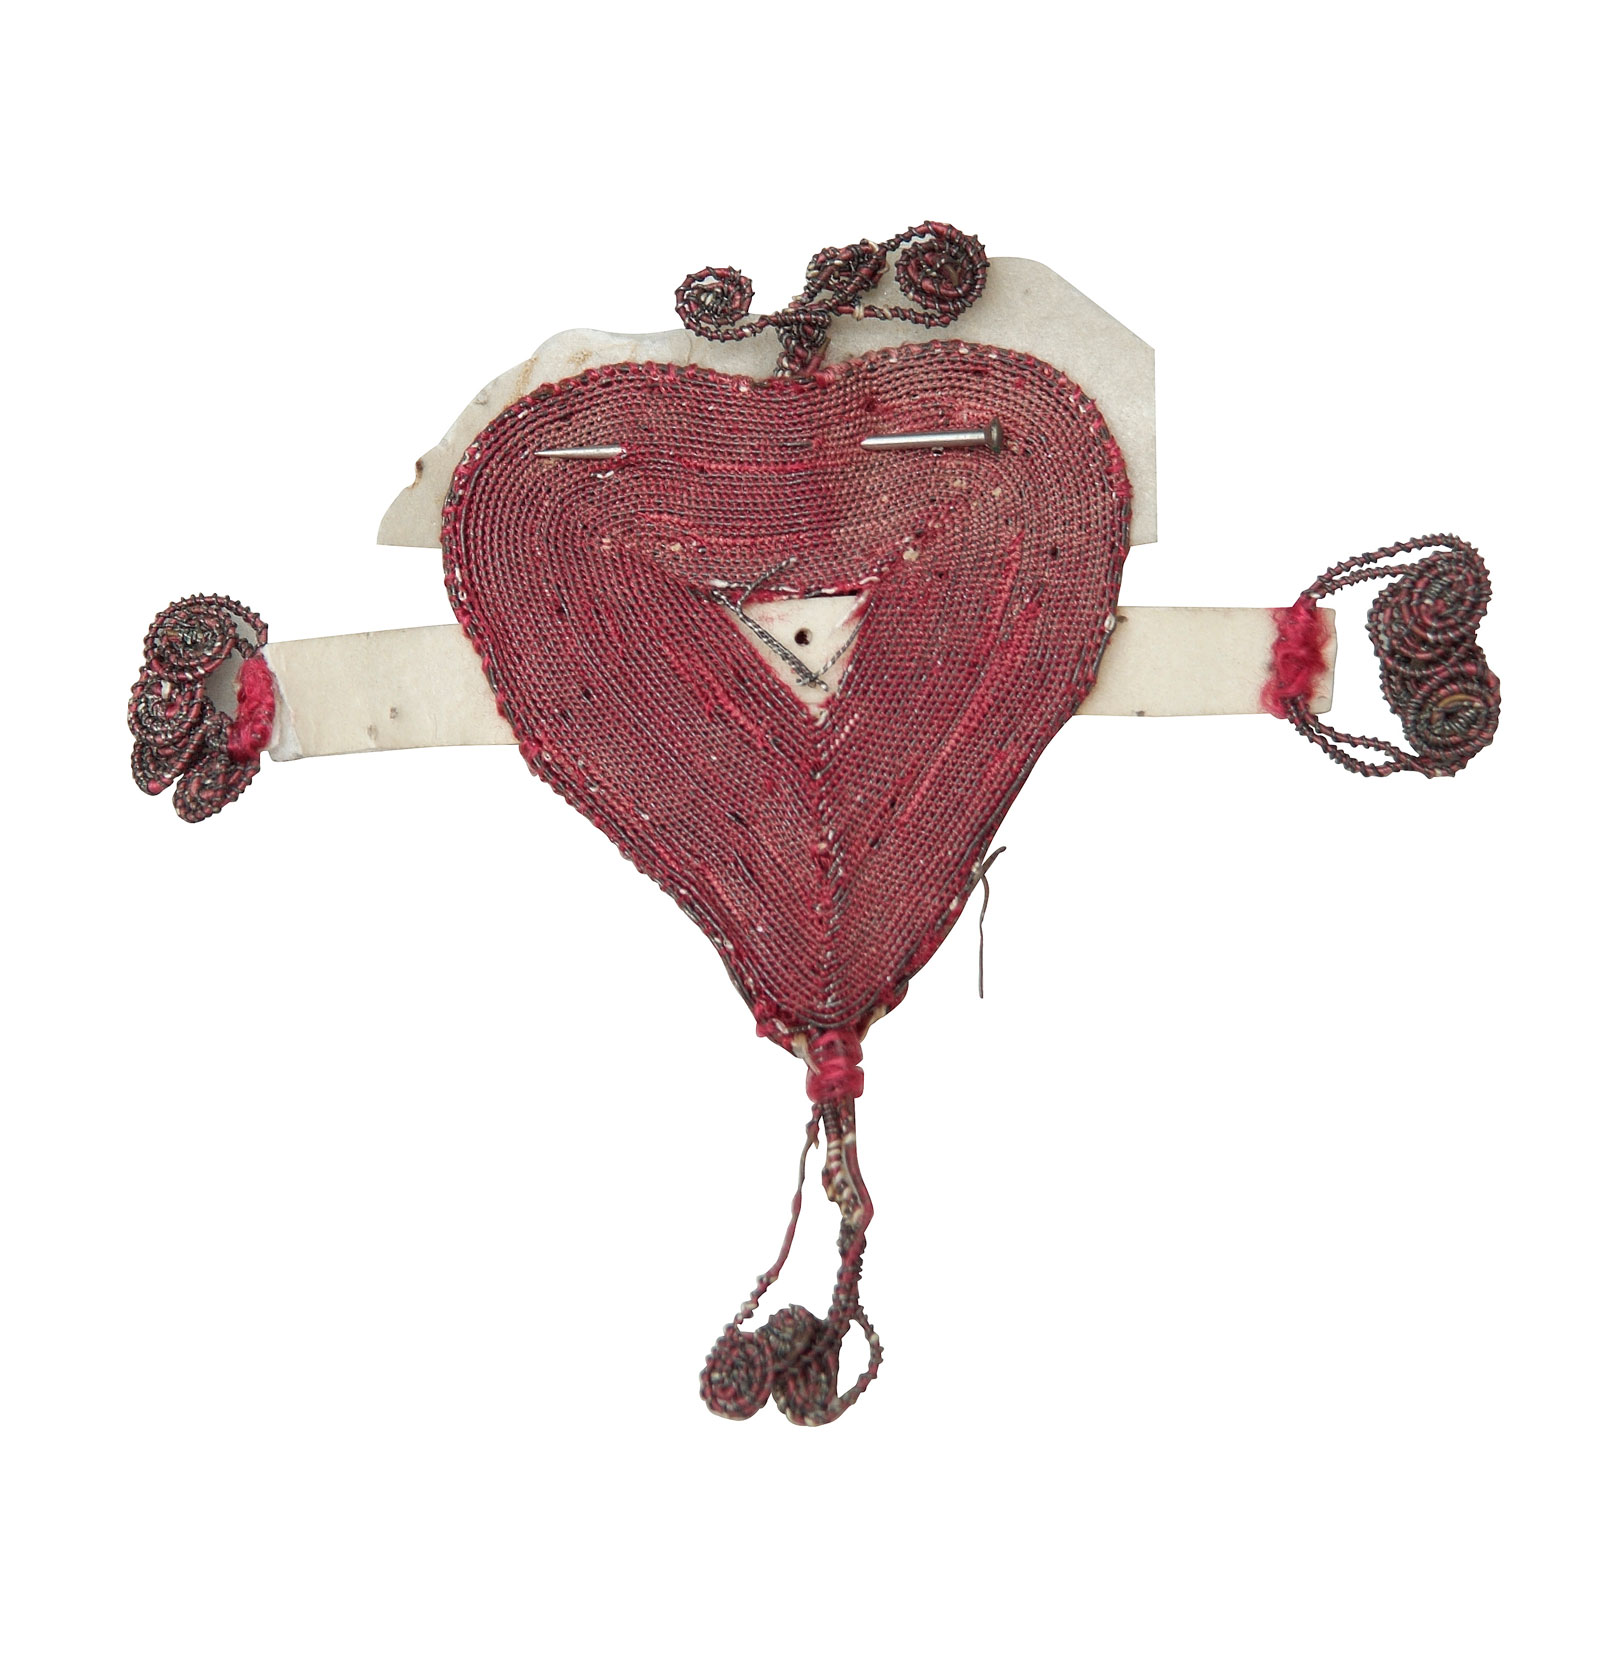 Textile heart left with a foundling as a memento, mid-eighteenth century